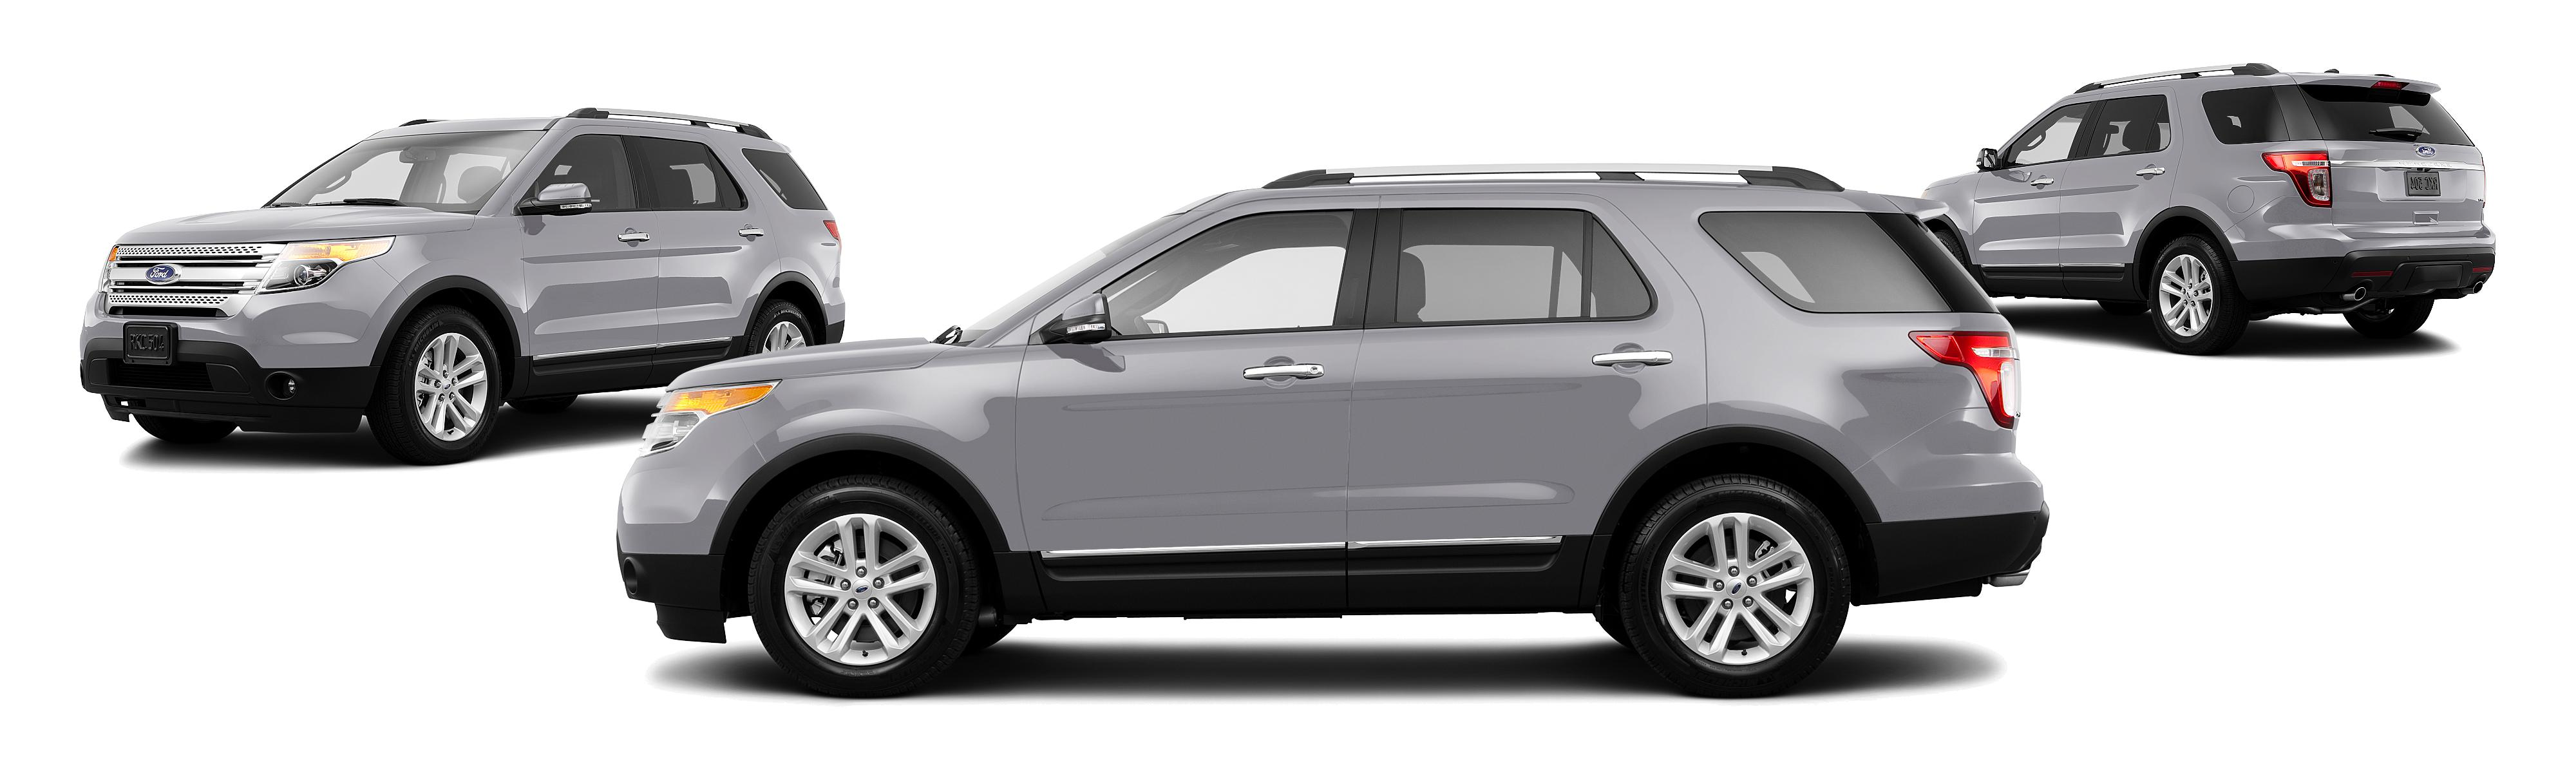 2014 Ford Explorer Xlt 4dr Suv Research Groovecar